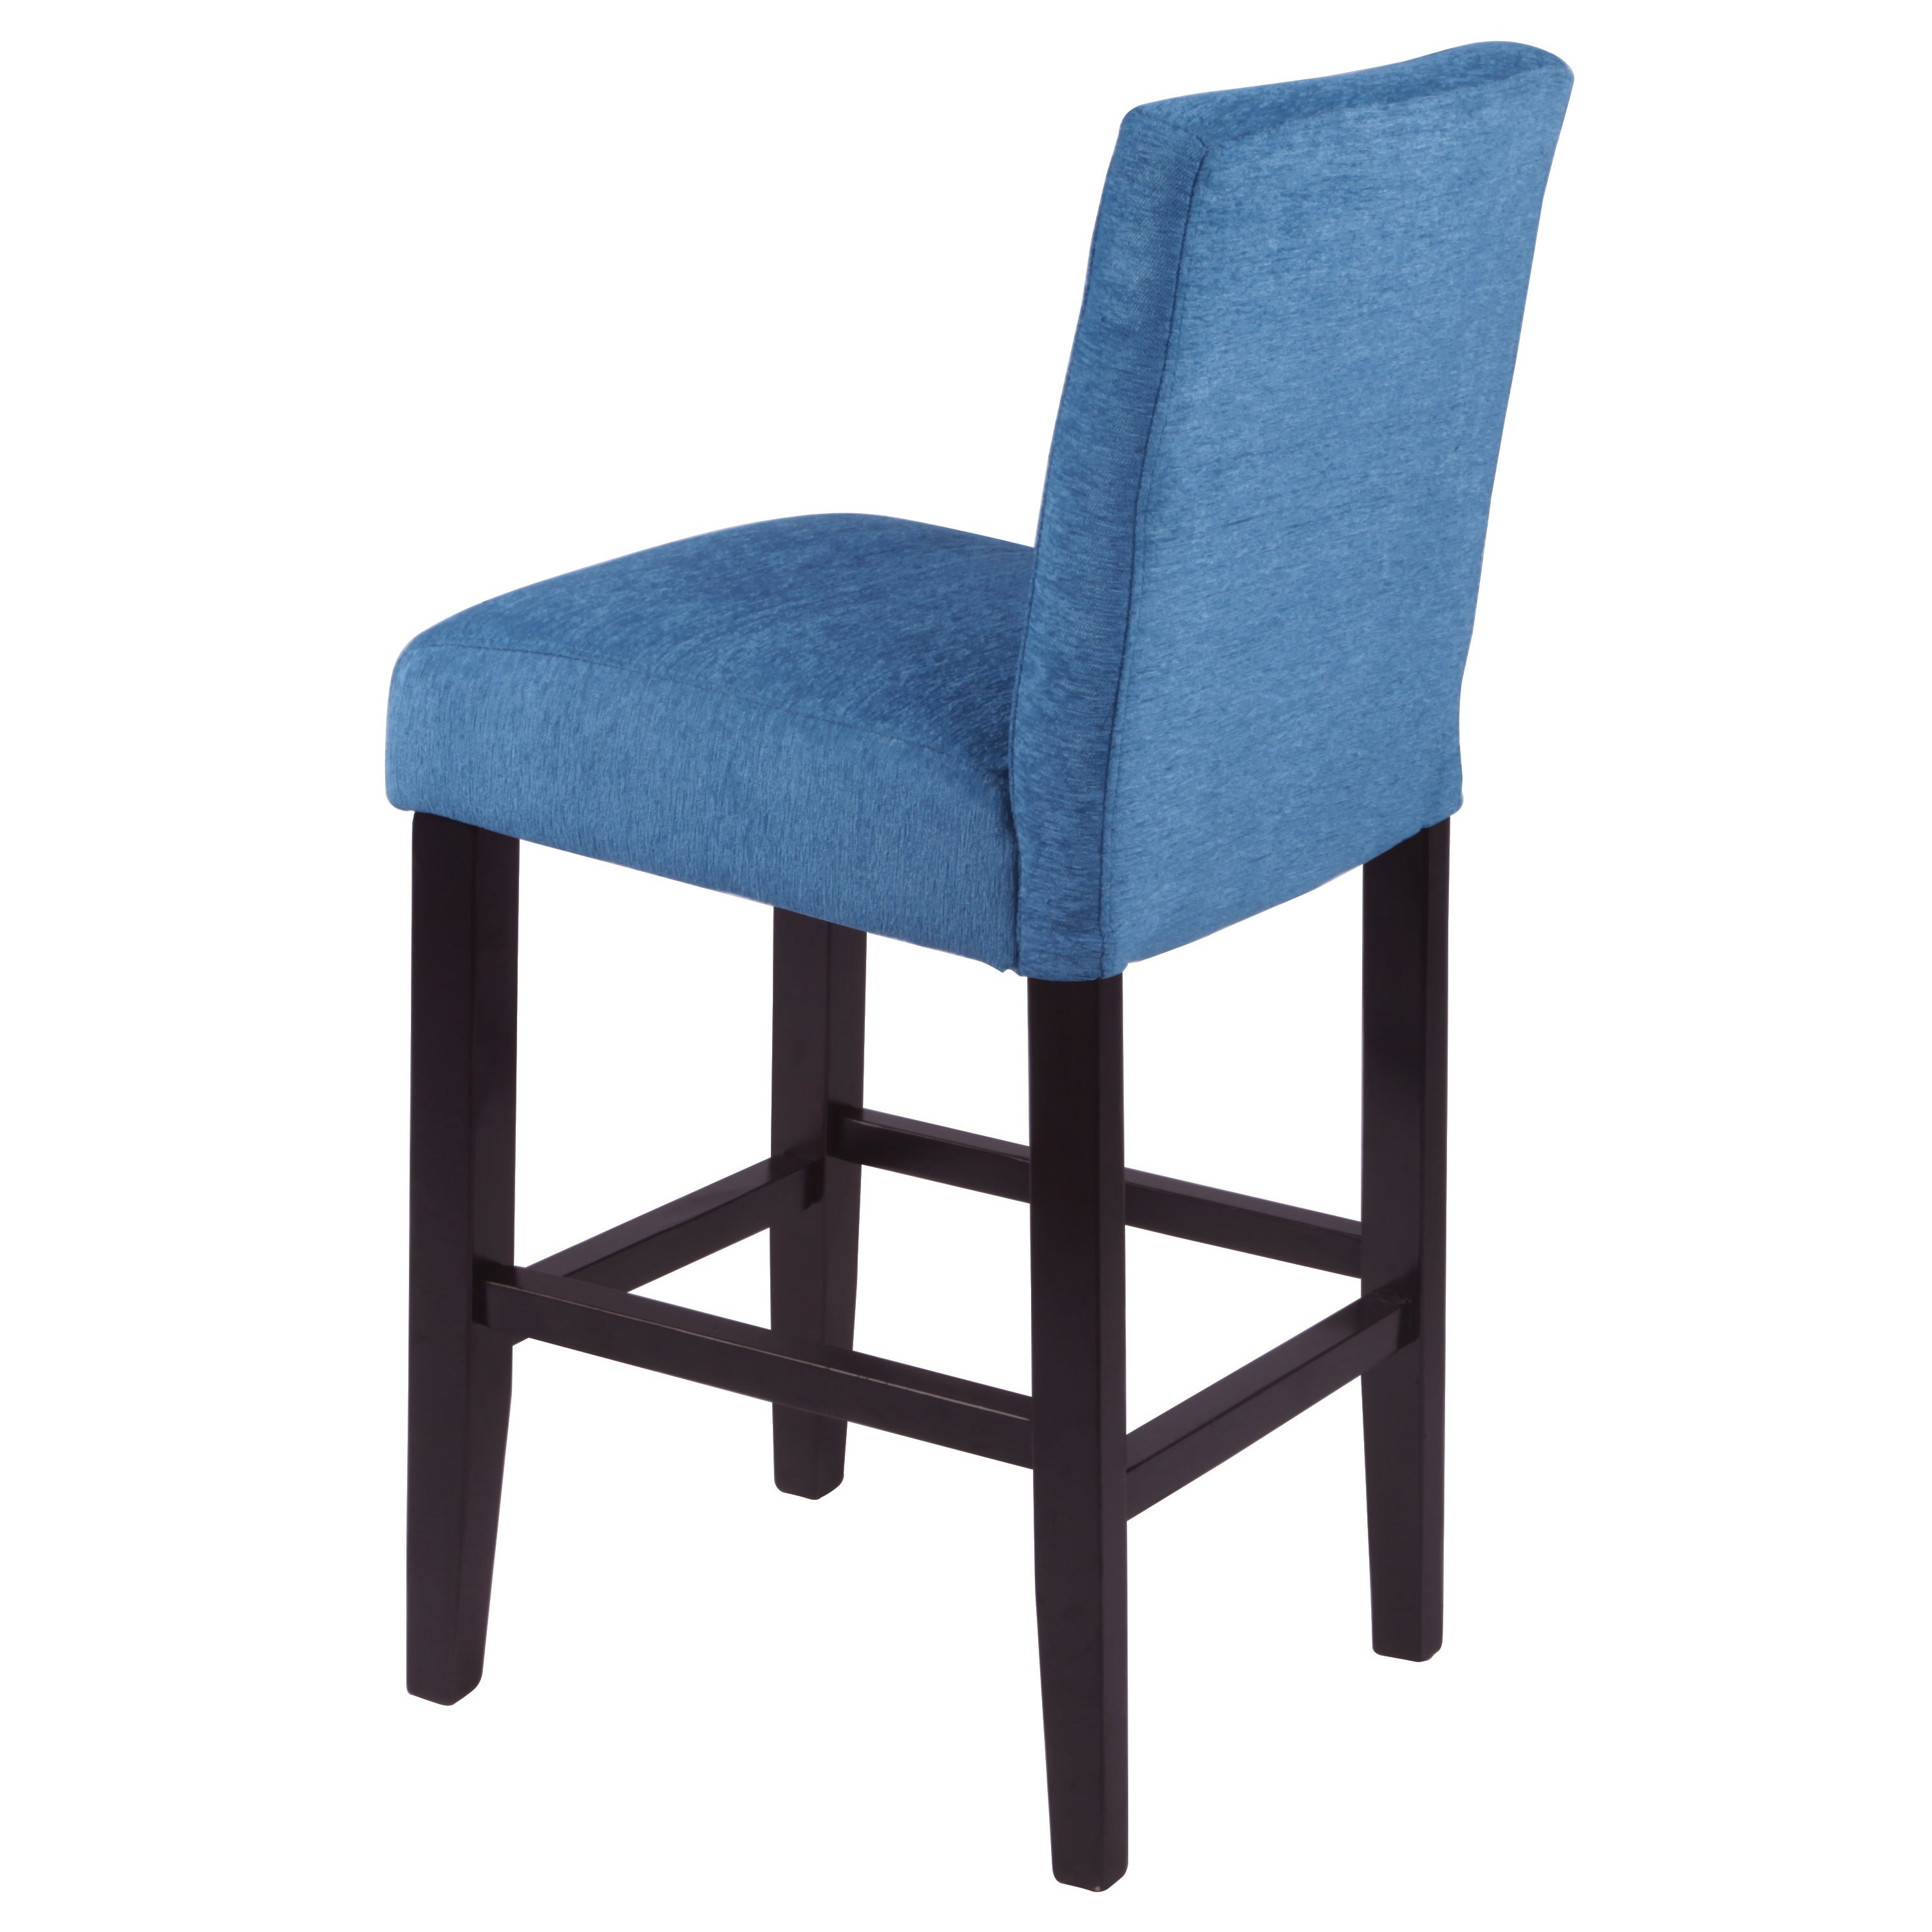 Swell Aprilia Upholstered Counter Chairs Set Of 2 Machost Co Dining Chair Design Ideas Machostcouk